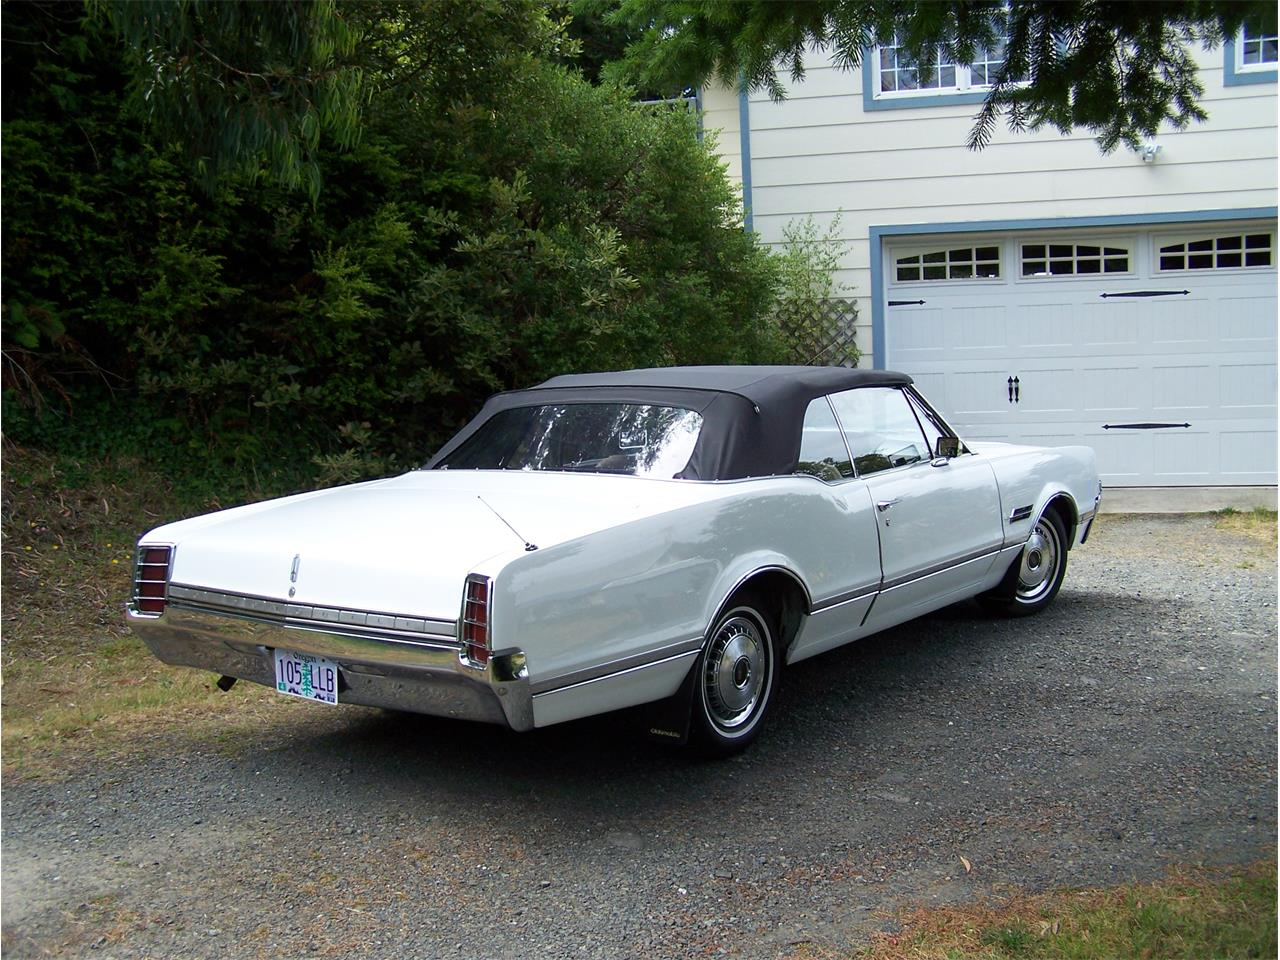 Large Picture of '66 Oldsmobile Cutlass Supreme located in Oregon - $15,000.00 - Q0S8